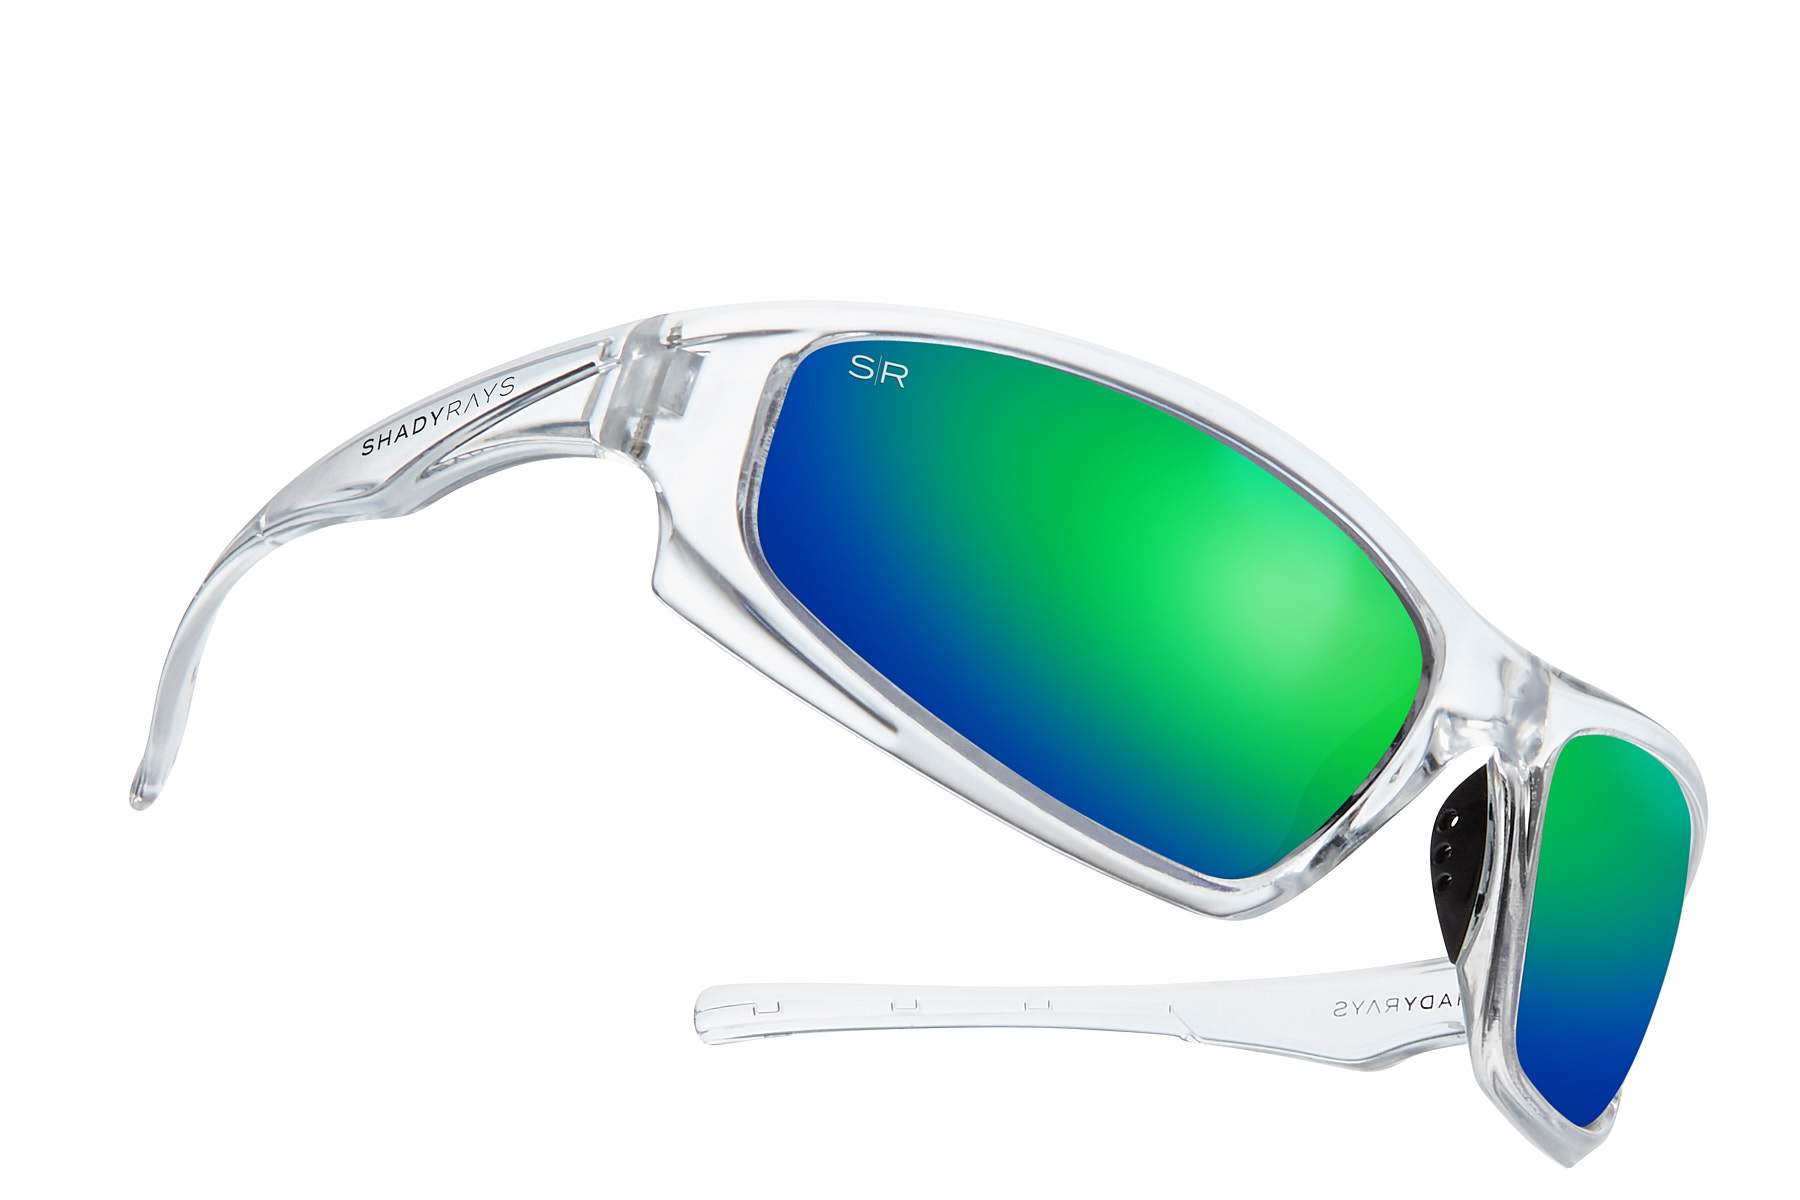 fdec22da2fa12 Shady Rays X Series EXTREME - Emerald Ice Polarized Sunglasses ...